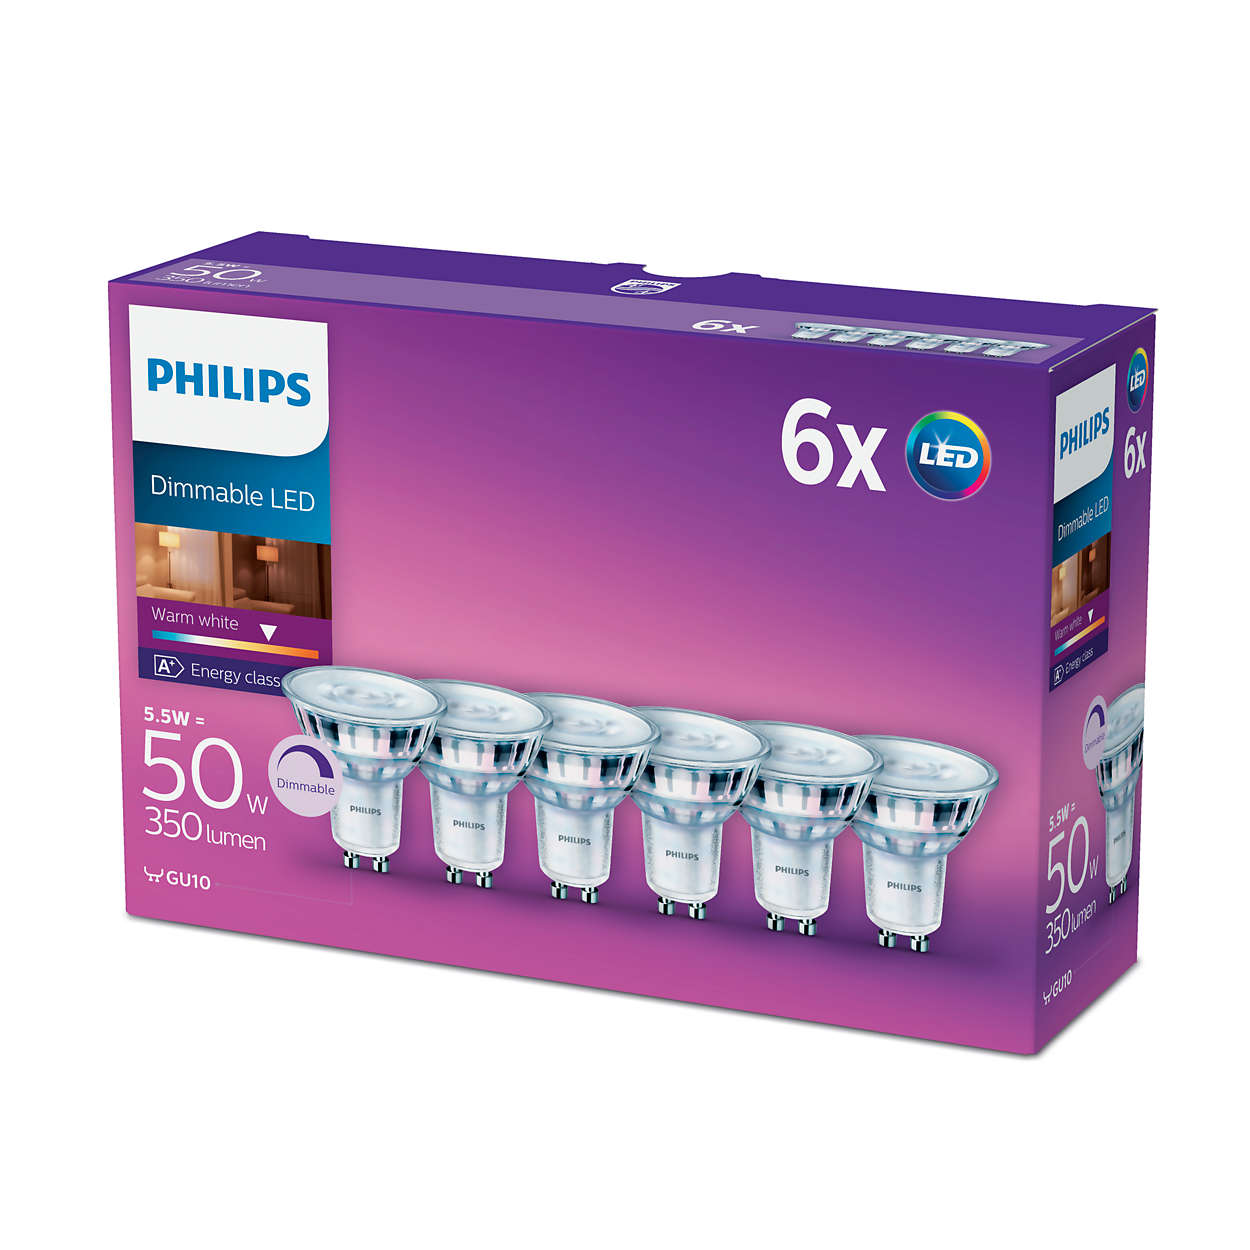 6pk philips led glass 50w a gu10 dimmable spot light bulb. Black Bedroom Furniture Sets. Home Design Ideas